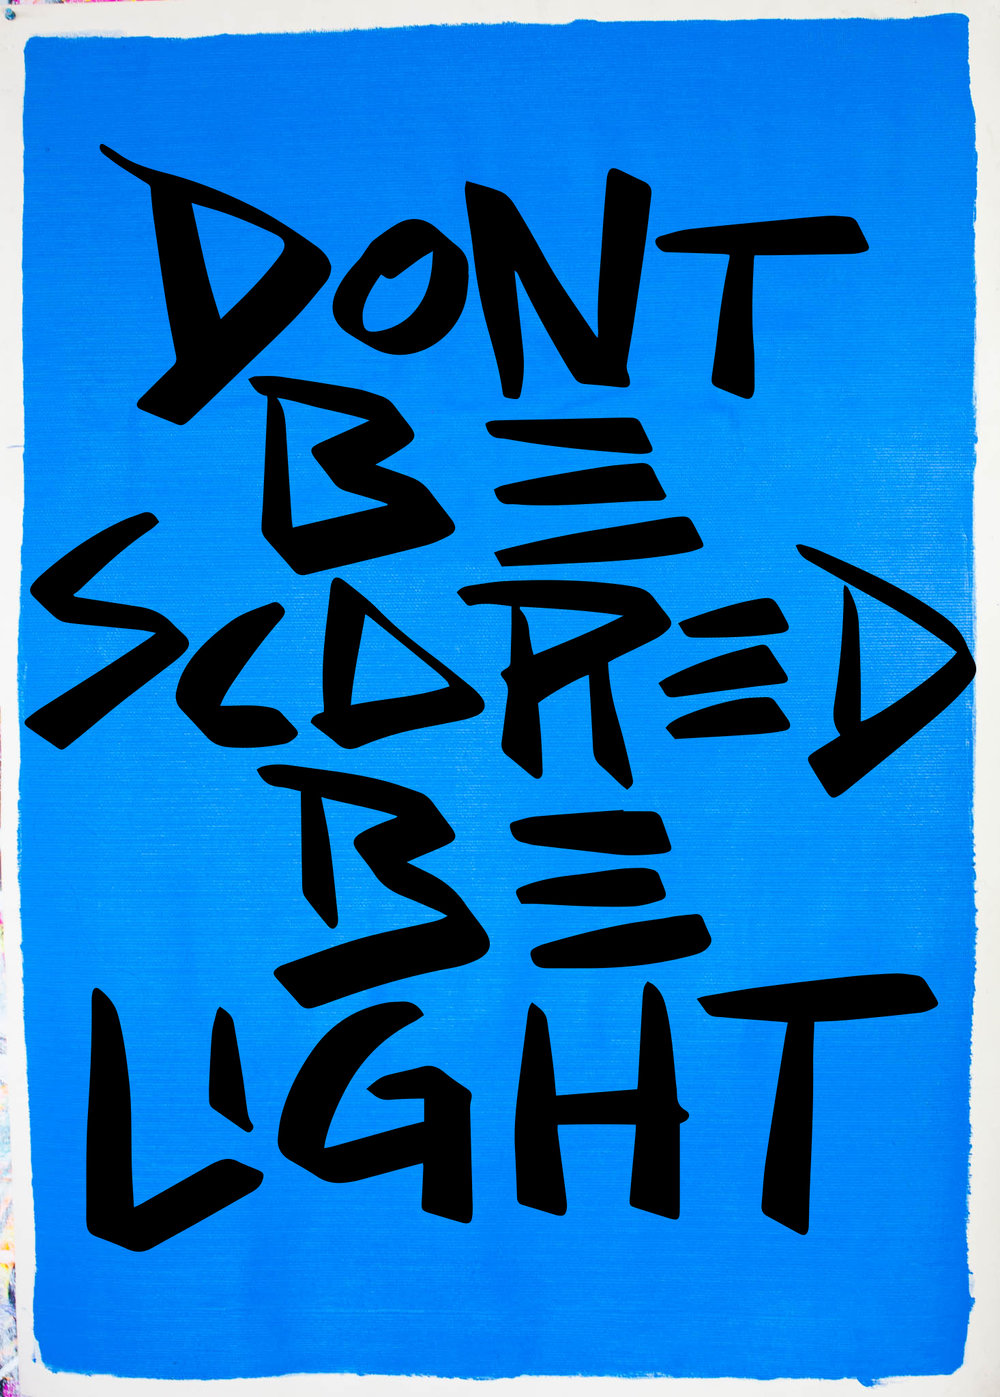 BlackLight.jpg